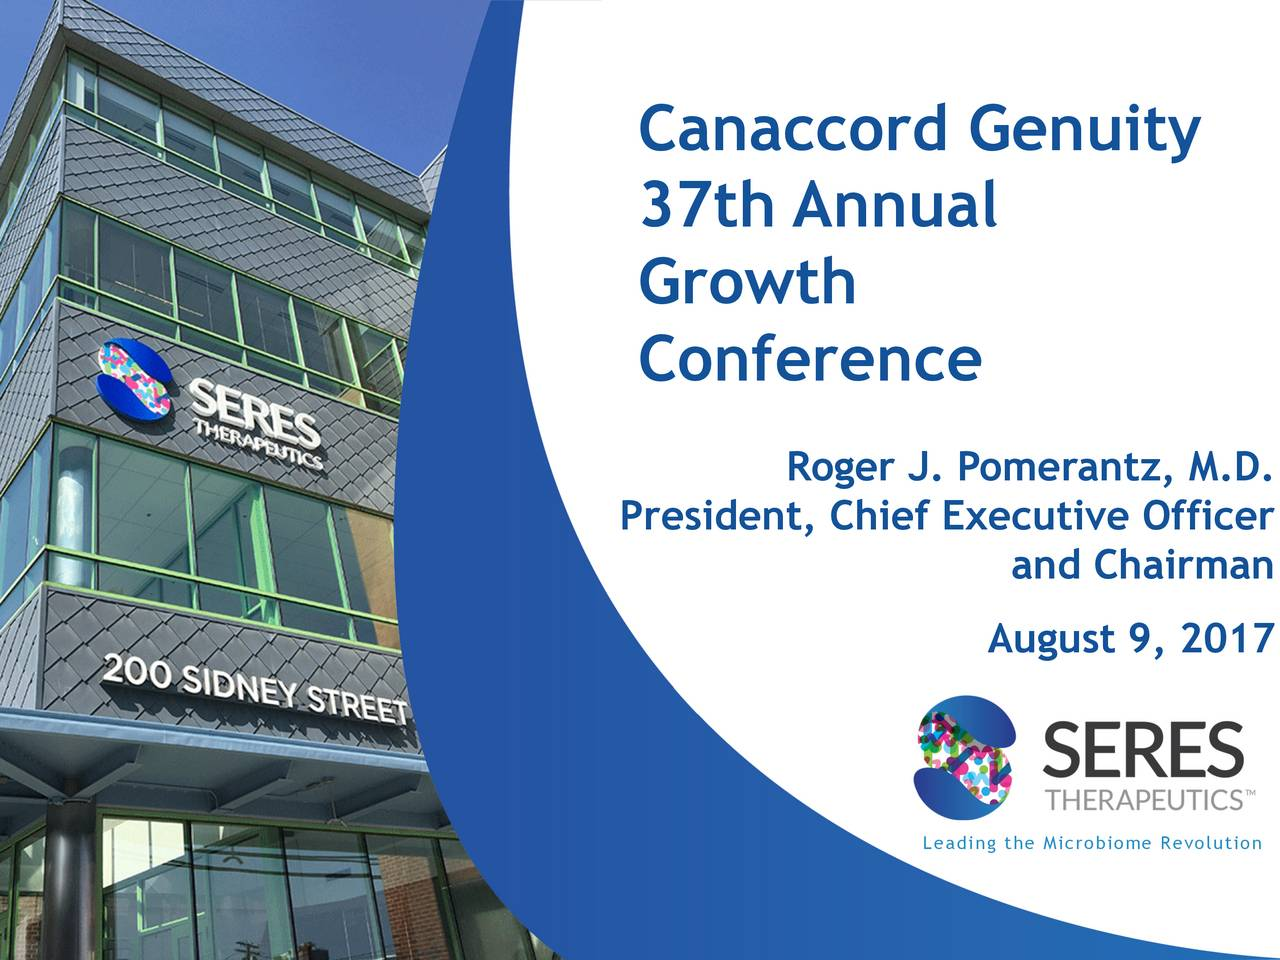 37th Annual Growth Conference Roger J. Pomerantz, M.D. President, Chief Executive Officer and Chairman August 9, 2017 Leading the Microbiome Revolution